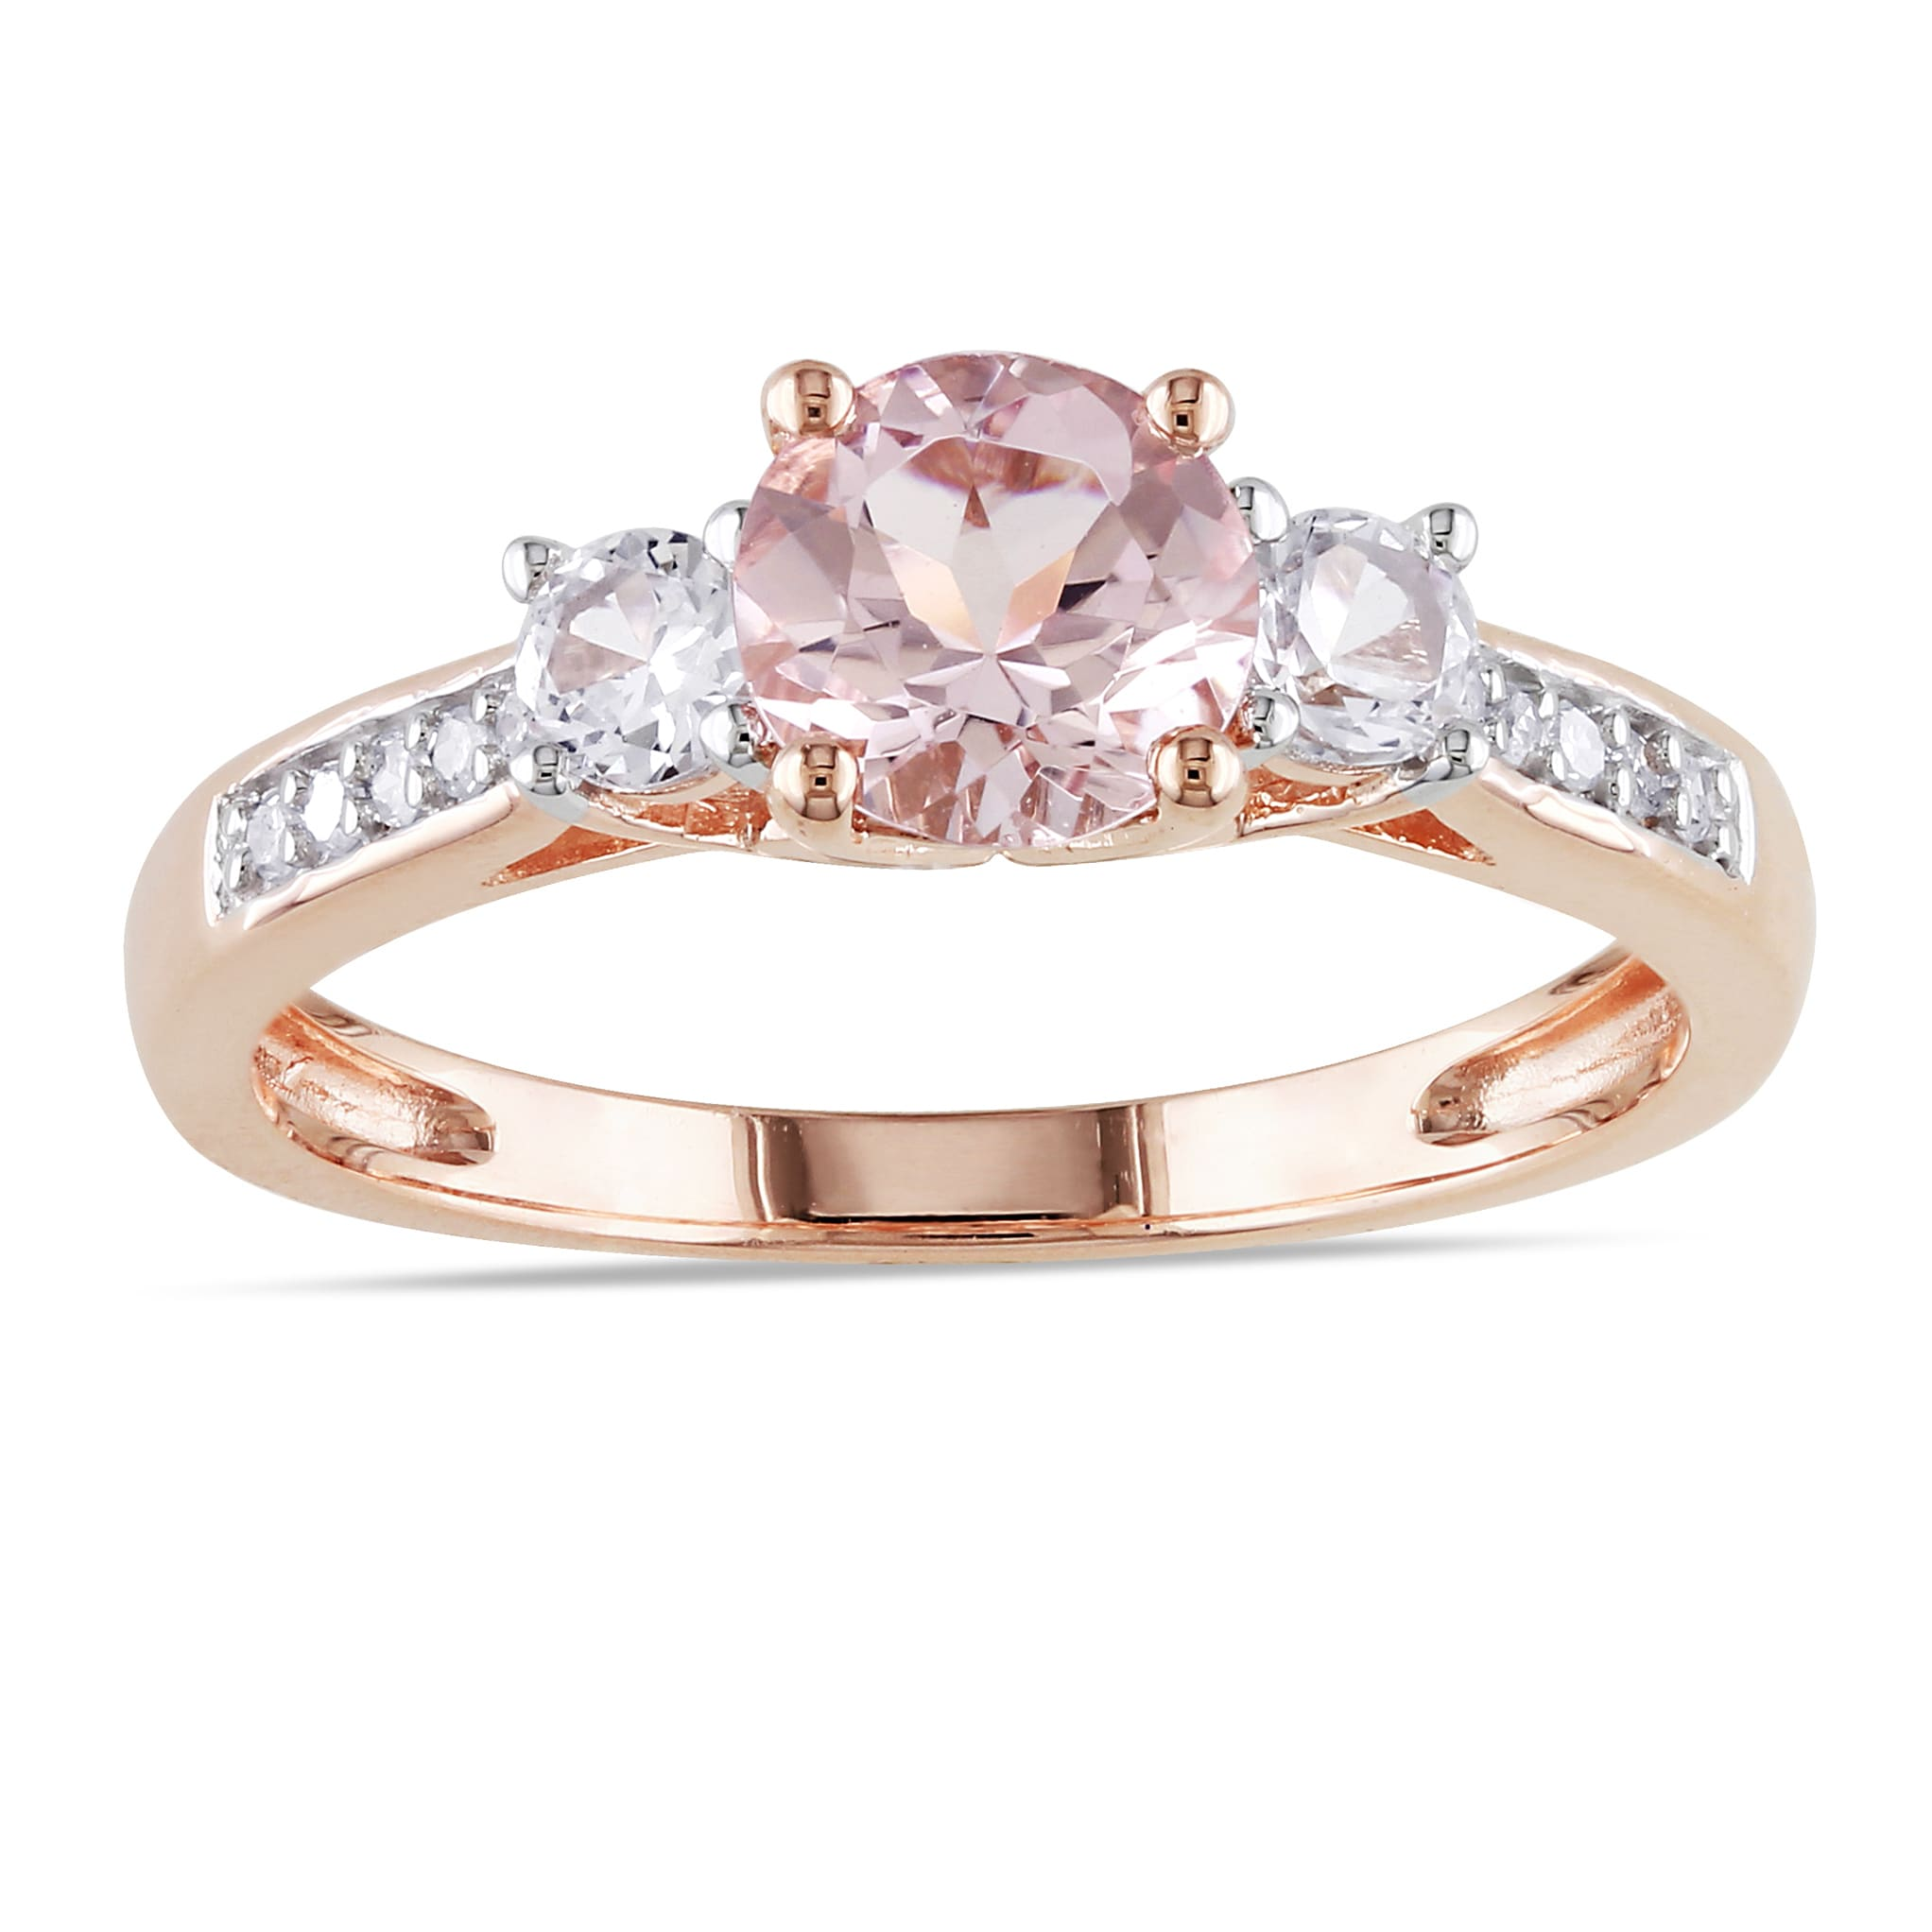 rose false trend for ring andrew vintage a subsampling engagement gold feel has article upscale best jeweller scale british bridal rings is geoghegan the cannele flattering s crop pink cannel twist